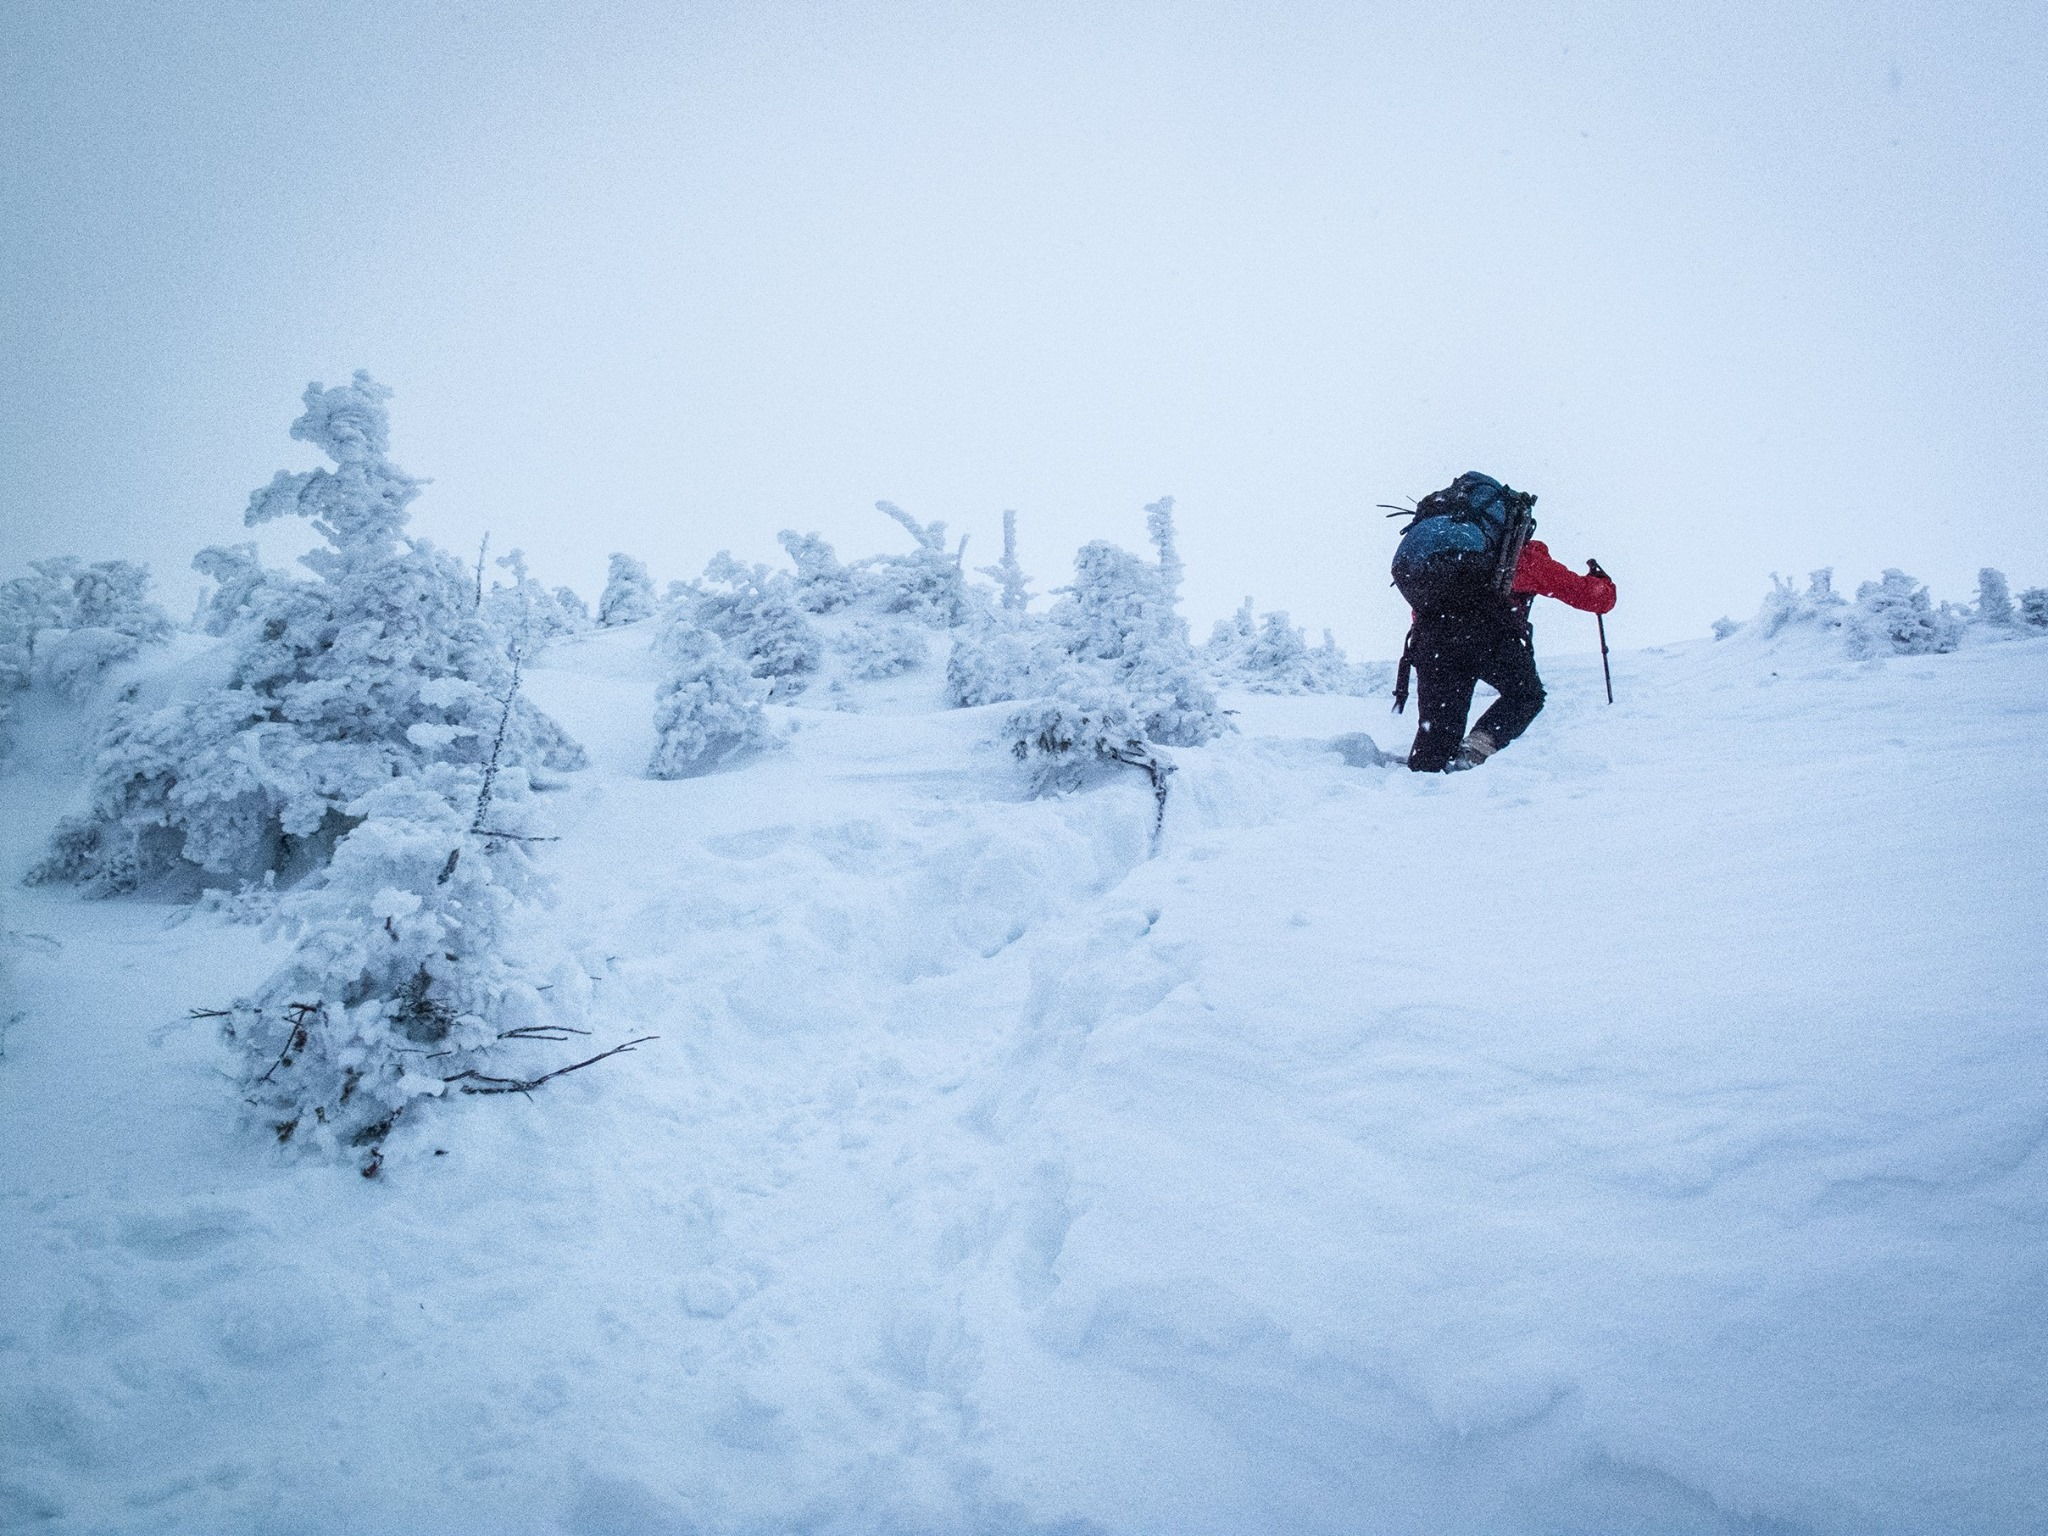 Nearing the peak of Algonquin. Photo by Jeff Berry.